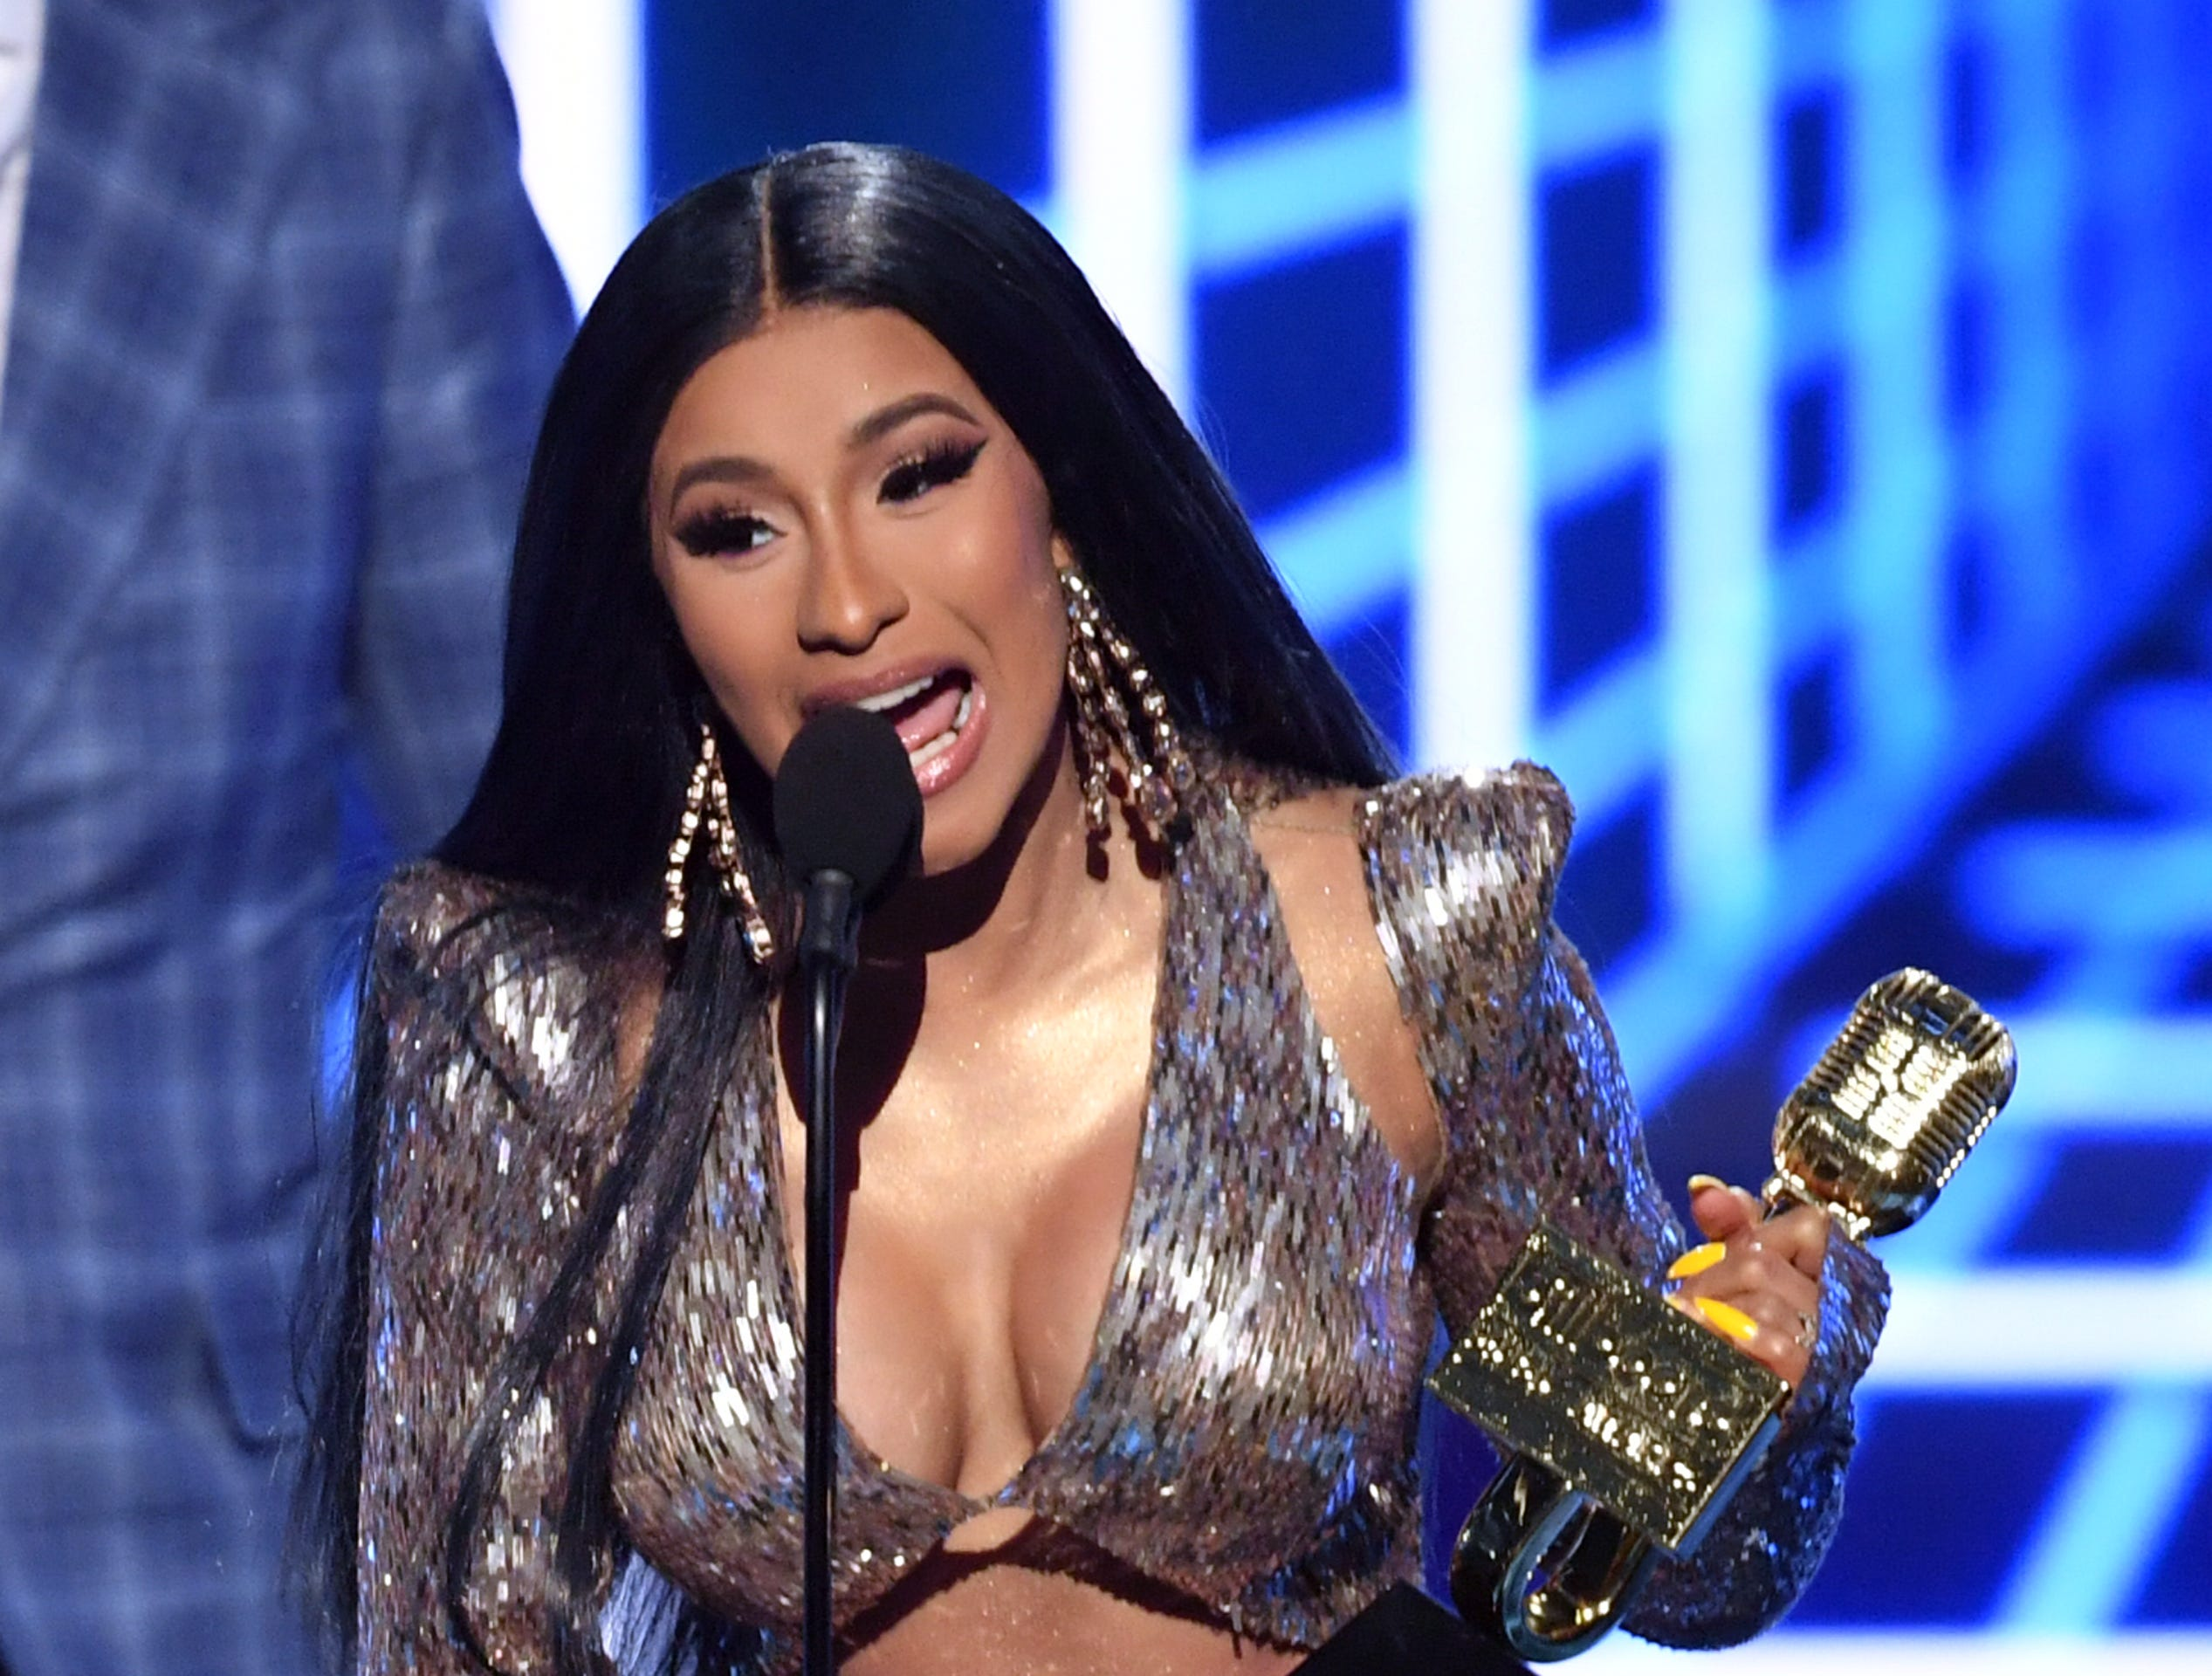 Cardi B accepts the Top Rap Song award for 'I Like It' onstage during the 2019 Billboard Music Awards at MGM Grand Garden Arena on May 01, 2019 in Las Vegas, Nevada.